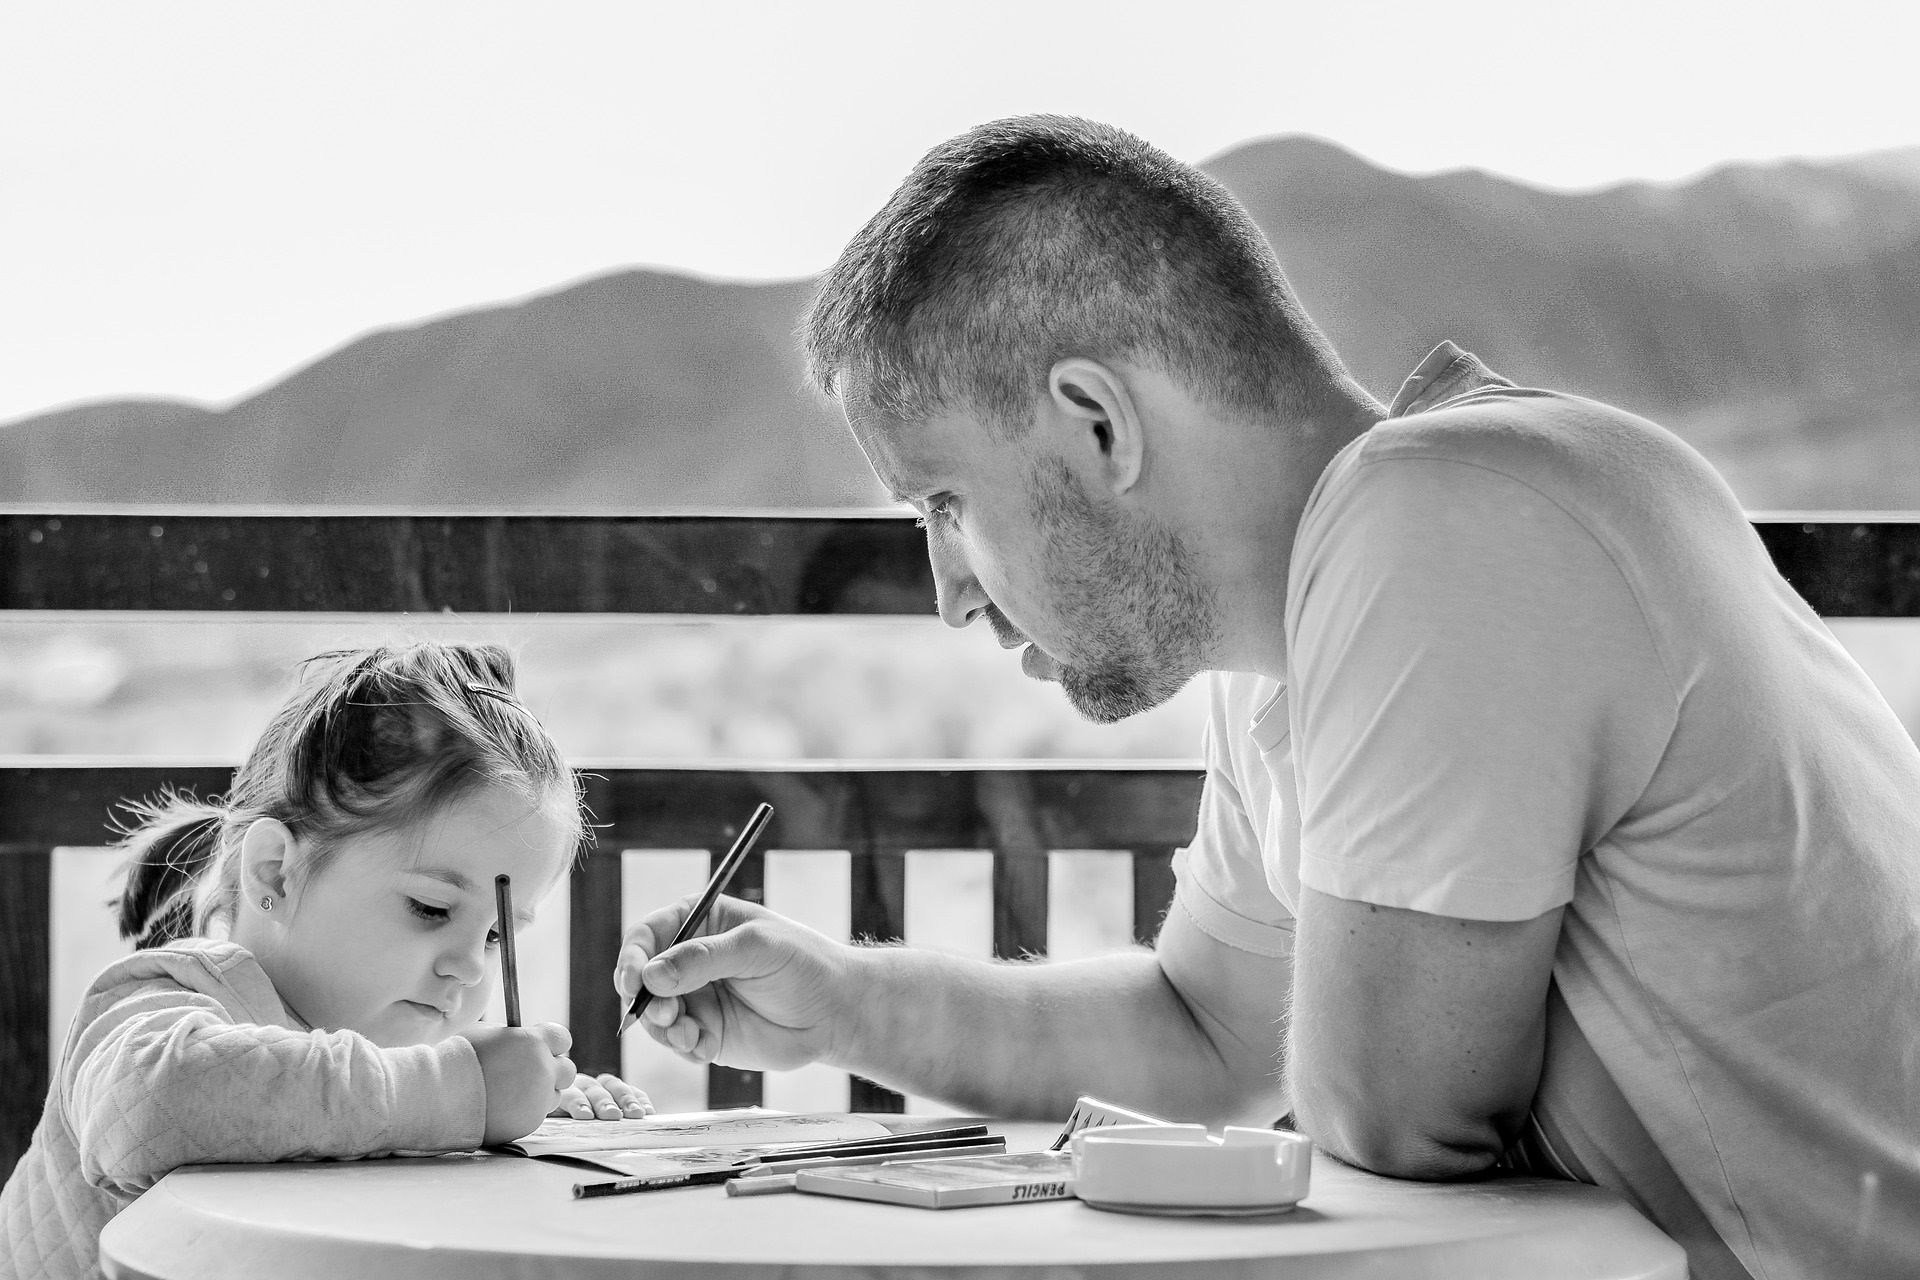 Father and daughter colouring together